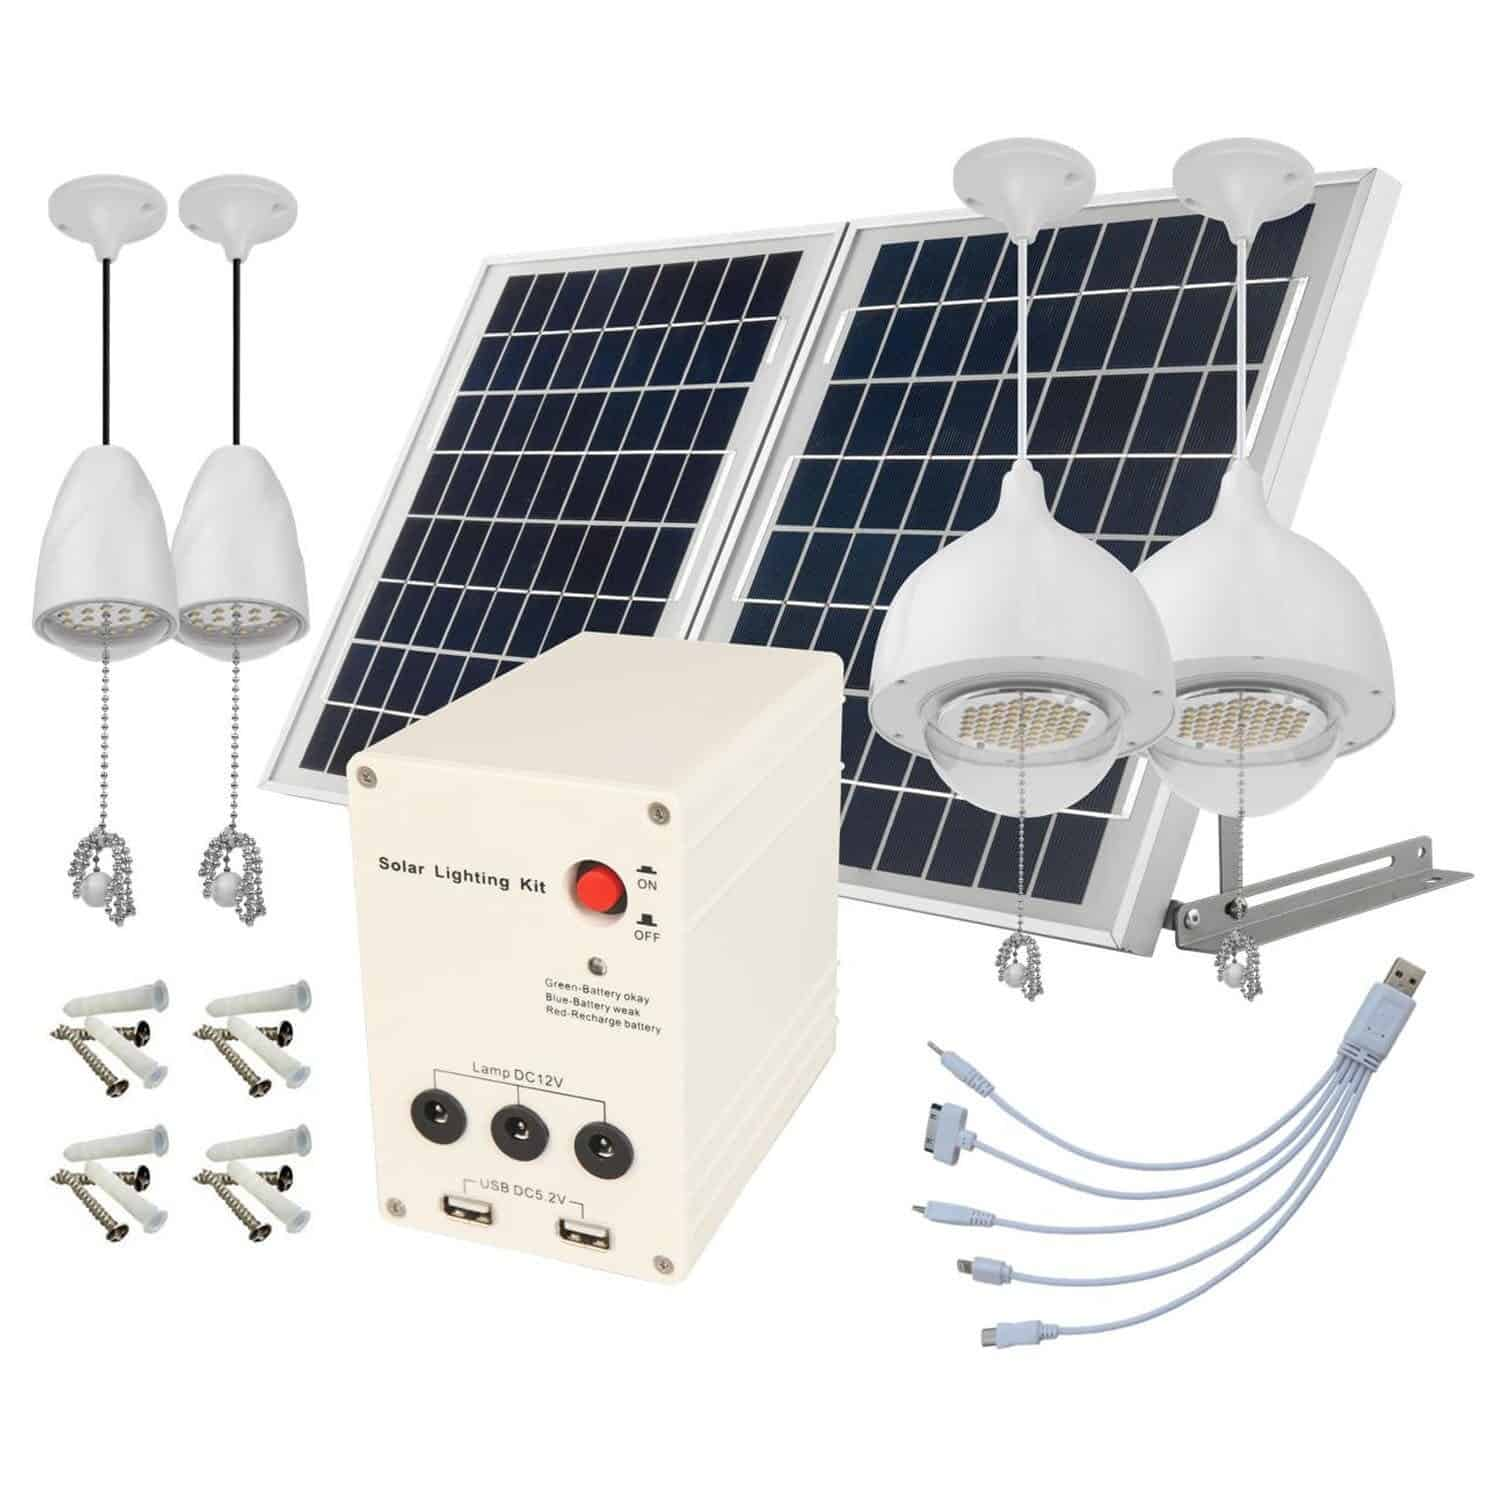 solar shed lighting kits democraciaejustica